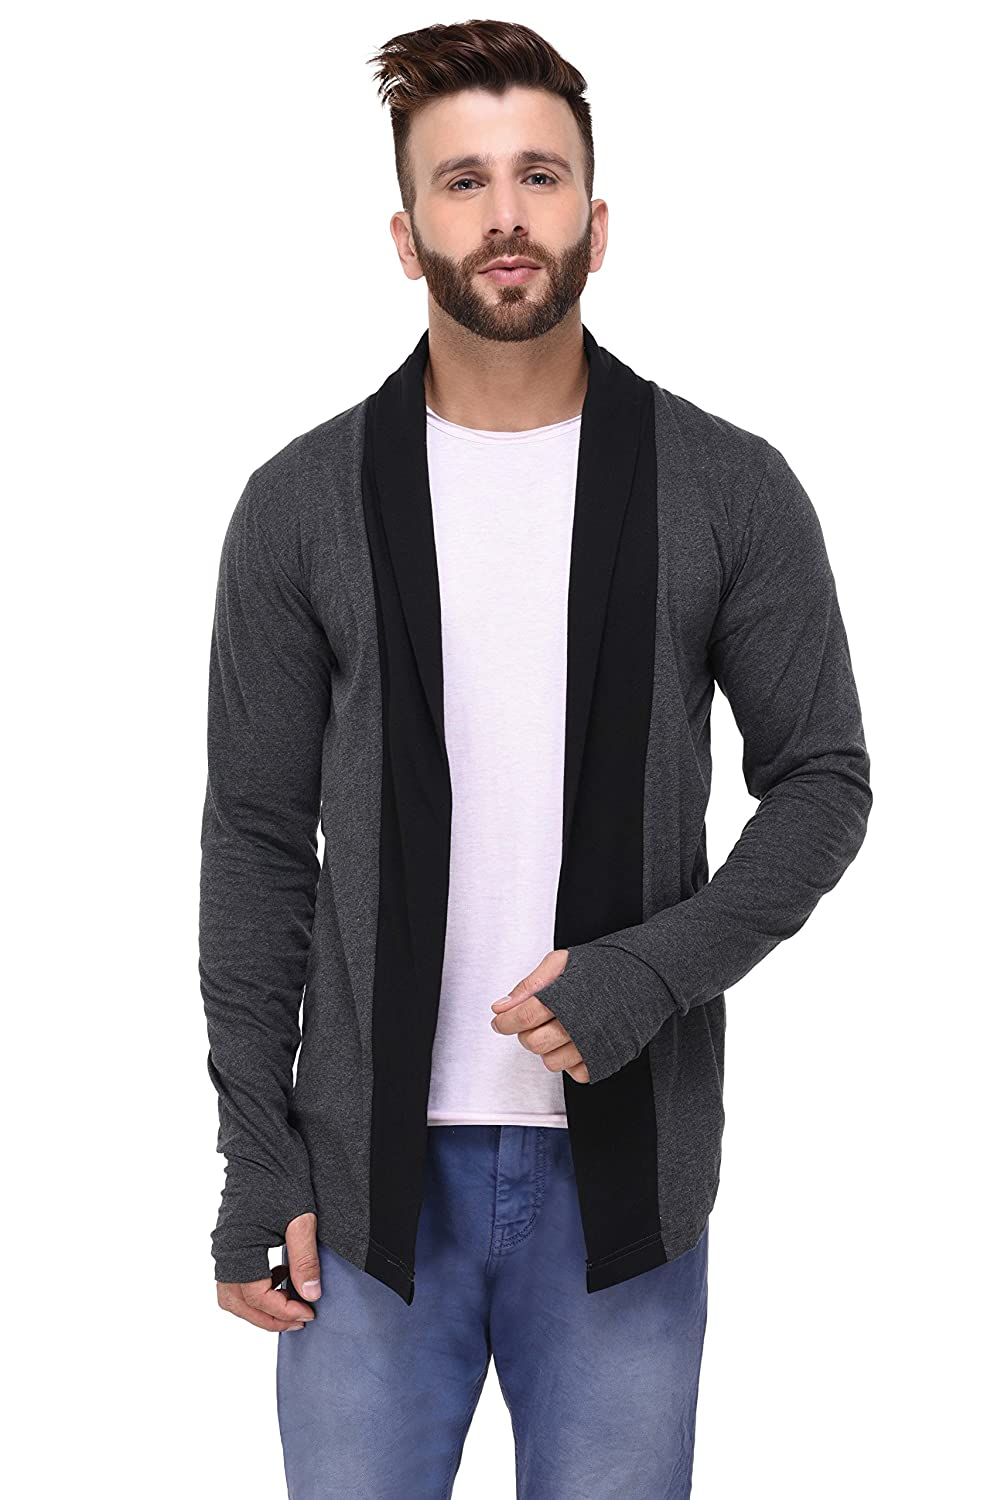 a45a9310f5 Rigo Charcoal with Thumbhole Open Long Cardigan Full Sleeve Shrug for Men